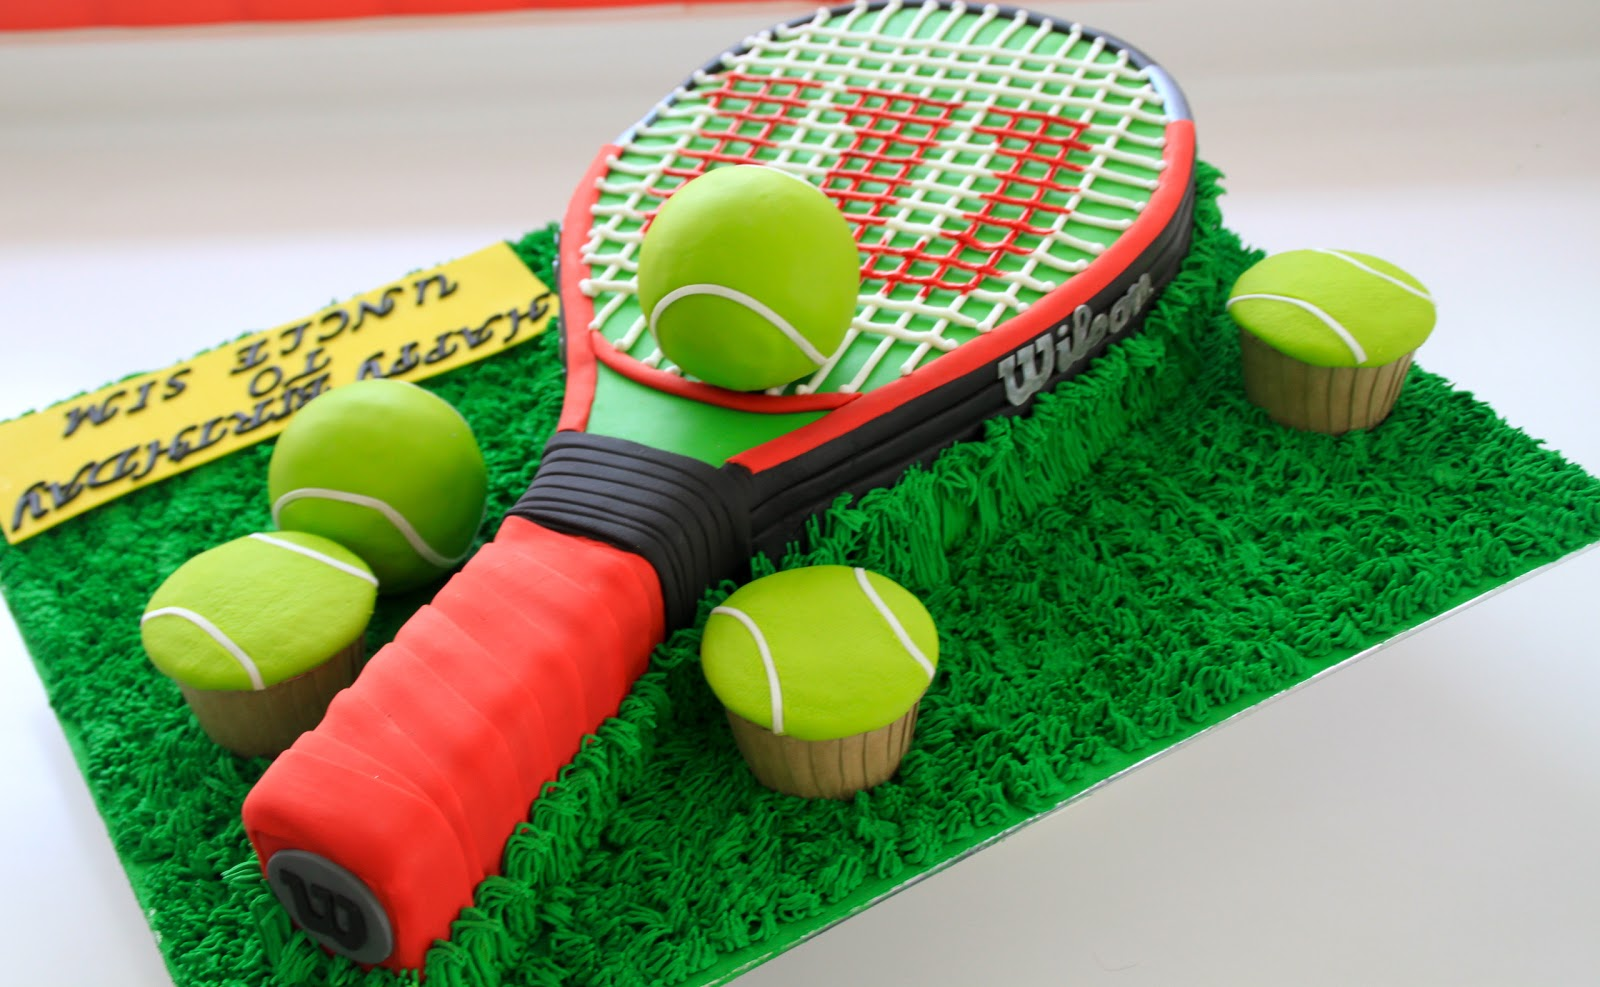 Tennis Racket Cake Decorations